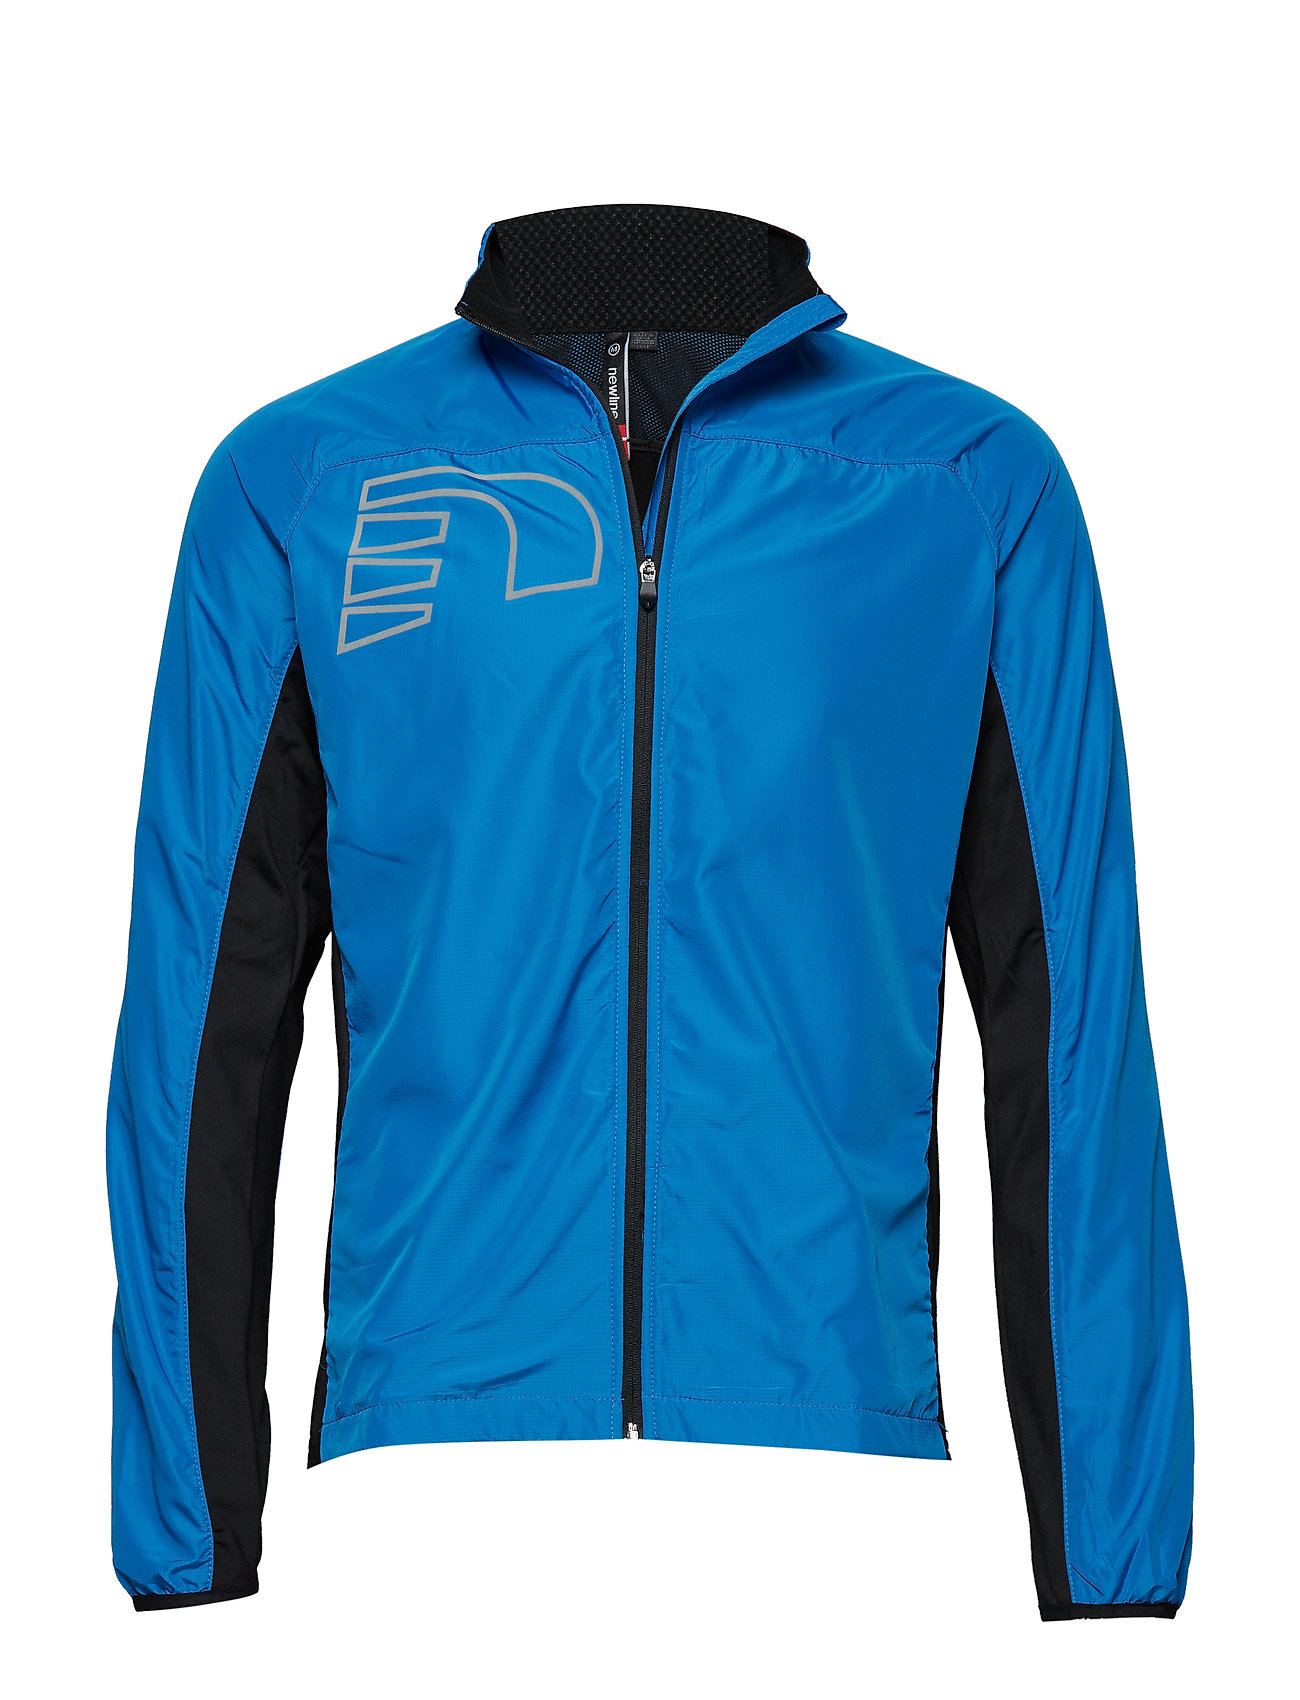 Newline Core Cross Jacket - BLUE